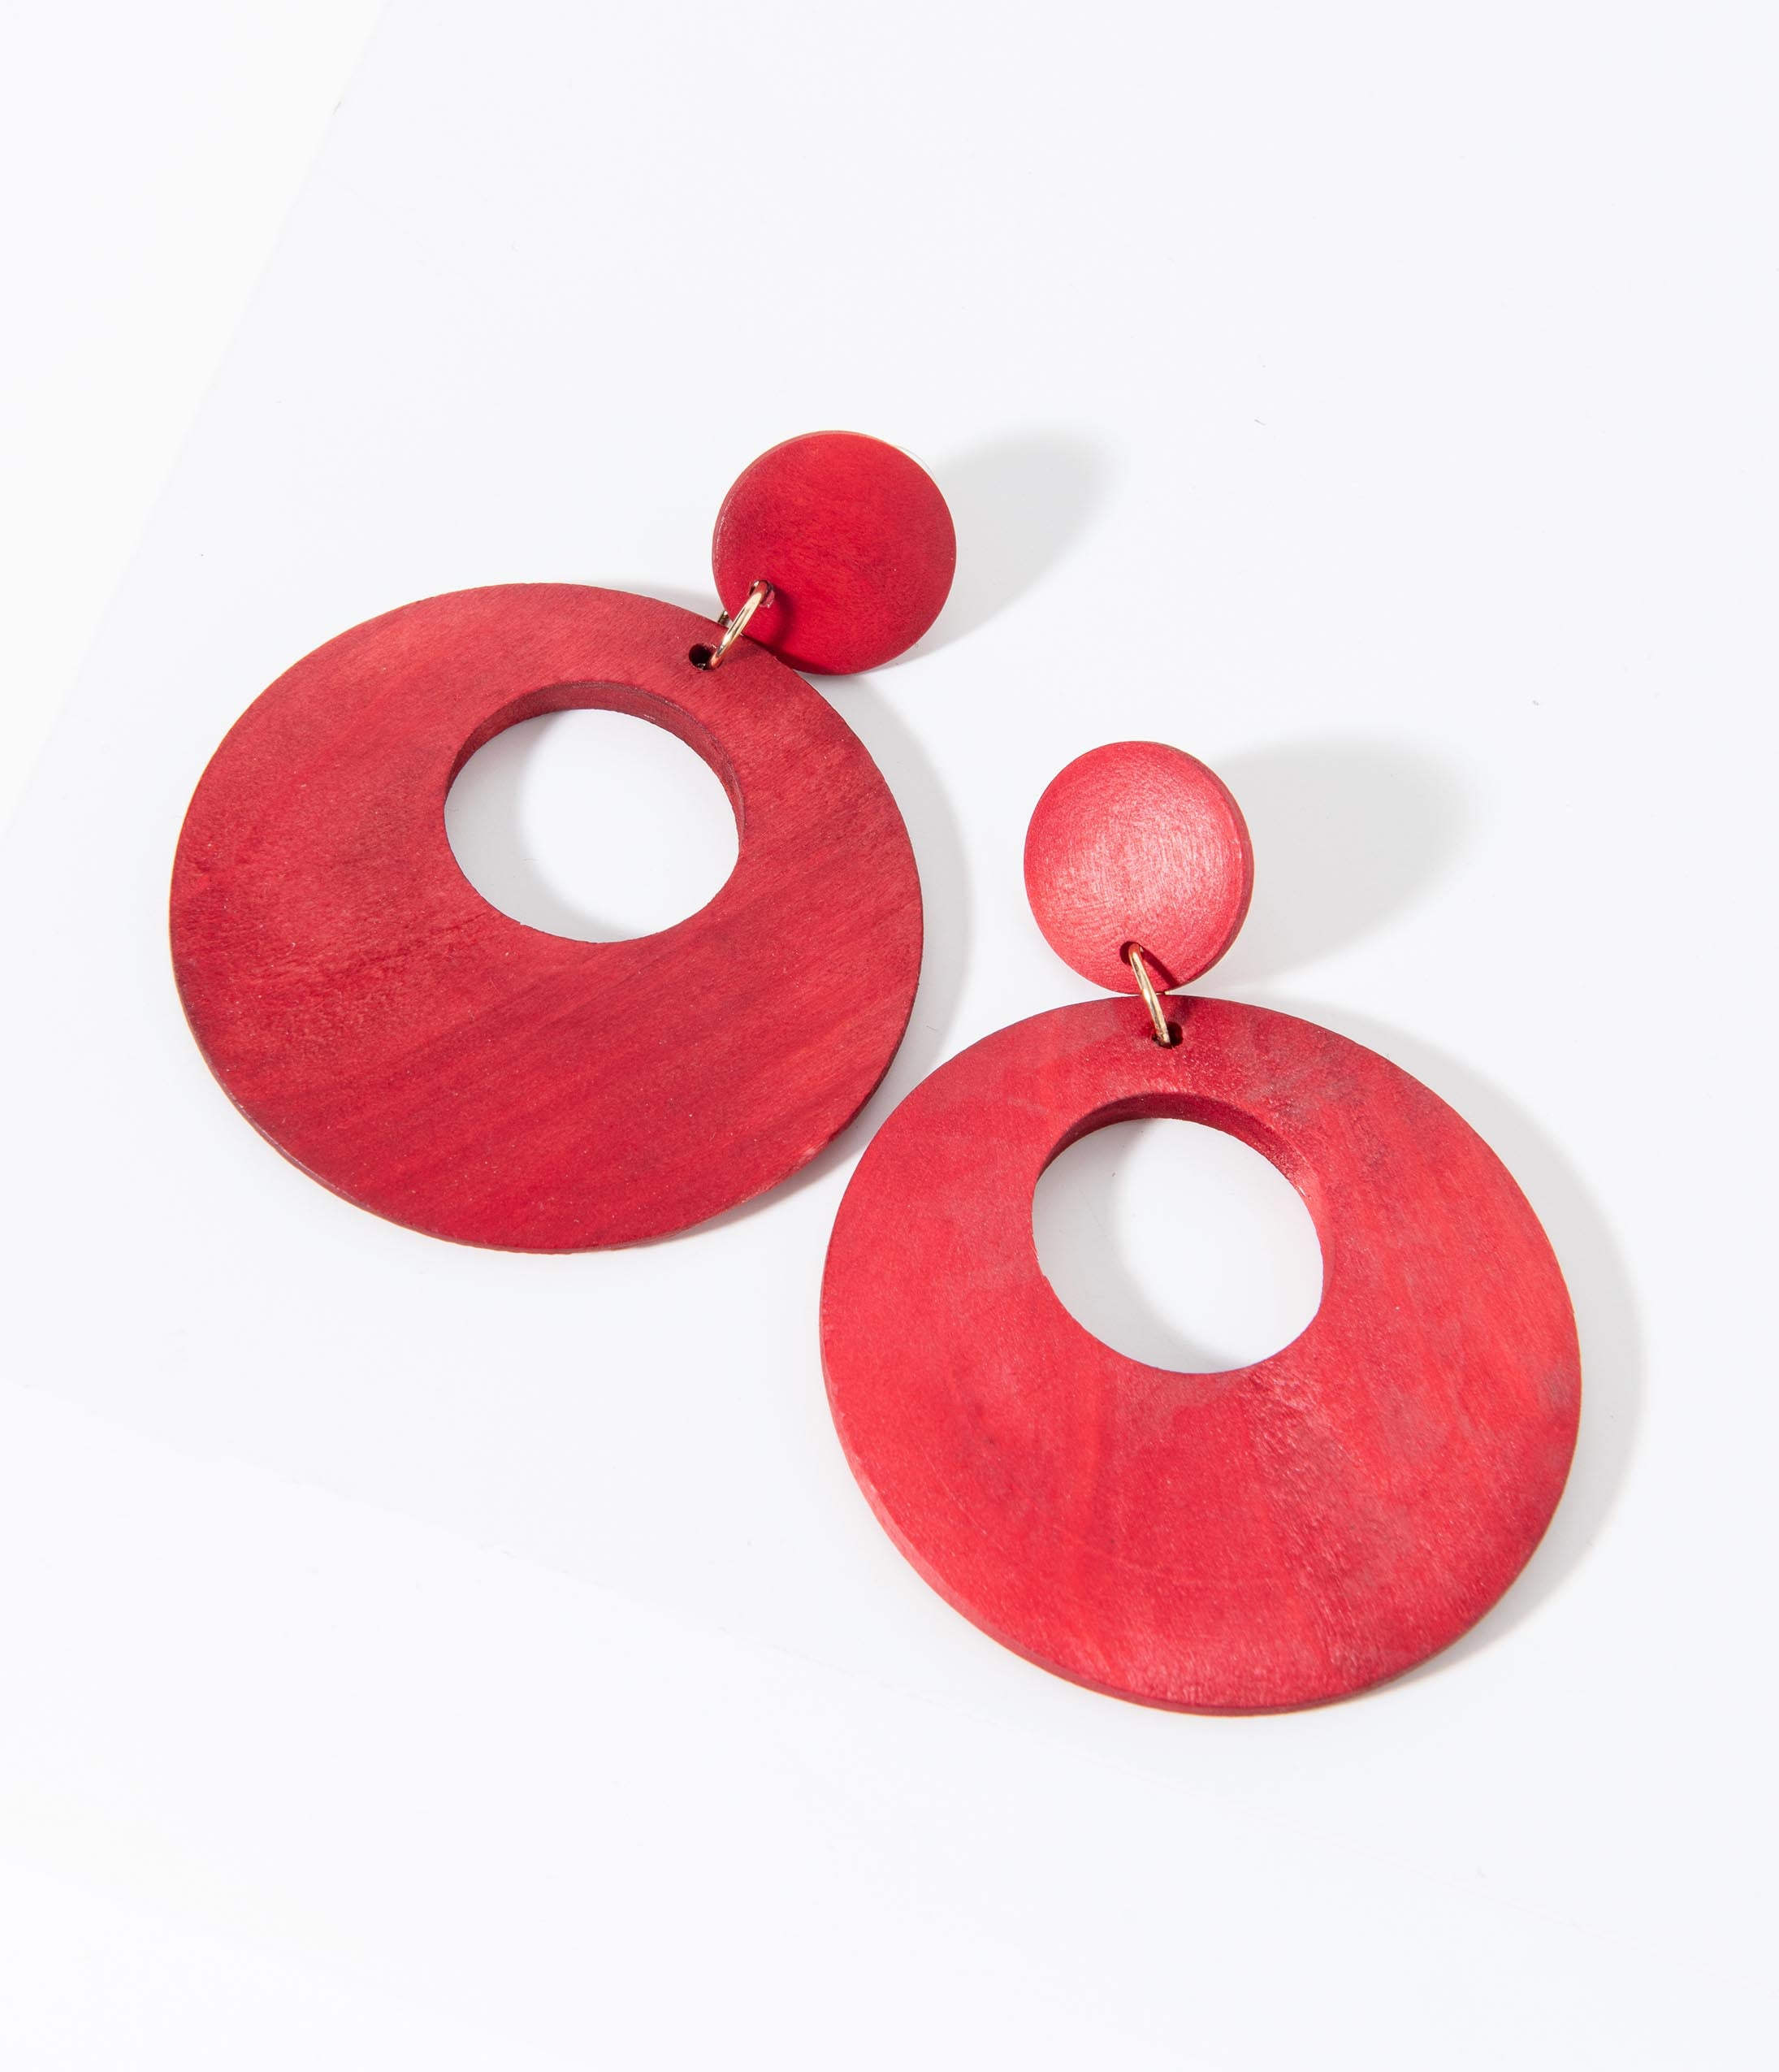 1960s Jewelry Styles and Trends to Wear 1960S Red Wooden Circle Drop Earring $16.00 AT vintagedancer.com